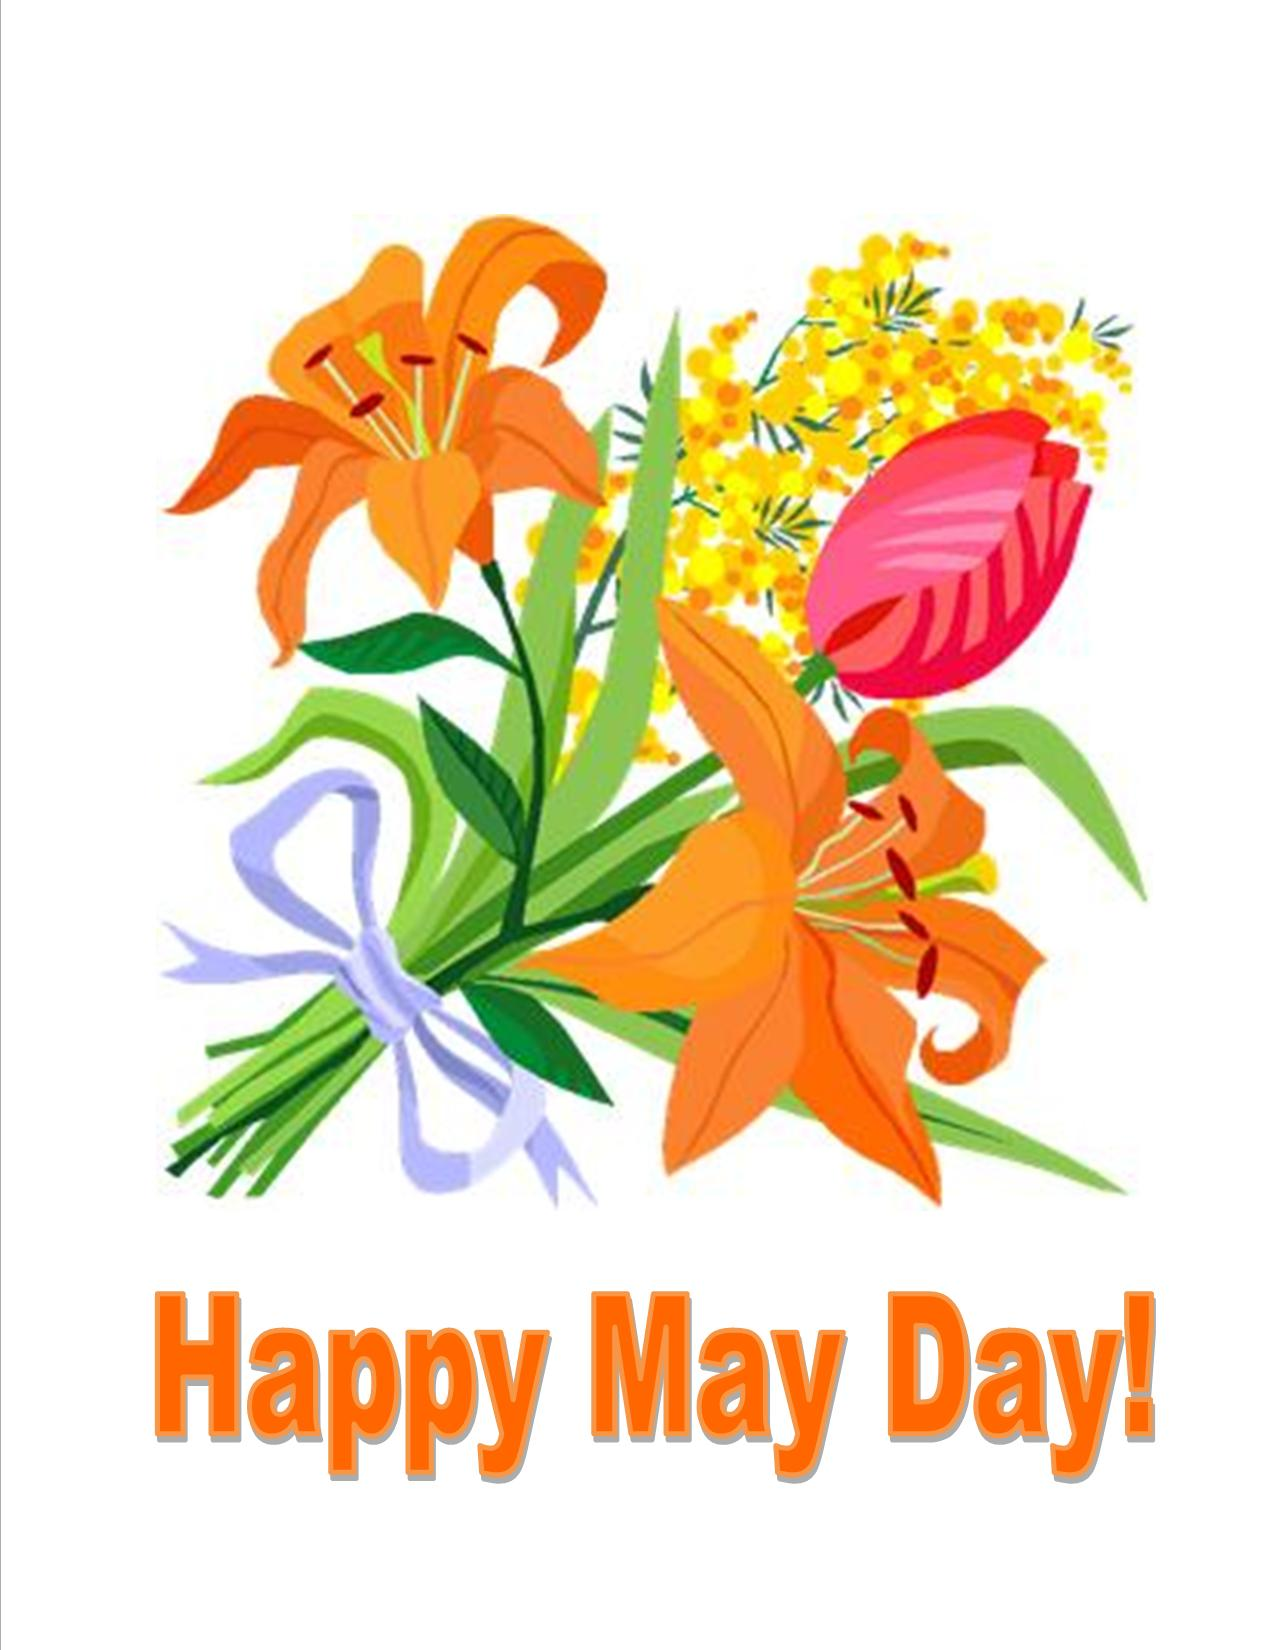 happy may day images pictures photos clipart rh ifreeprintablecalendar com may day flower clipart happy may day clipart